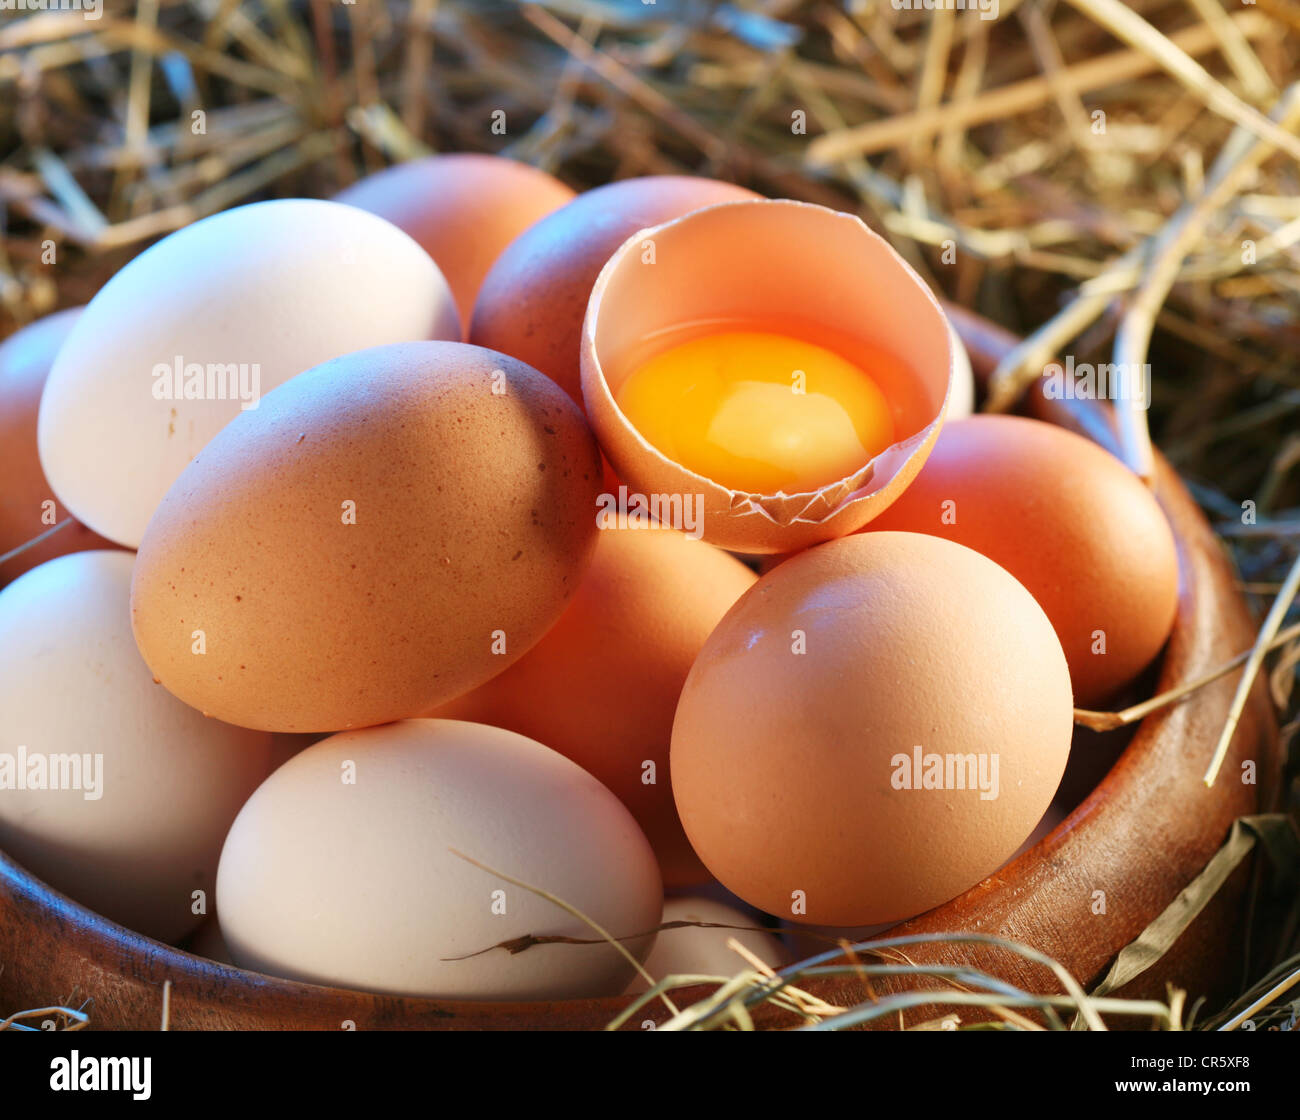 Chicken eggs in the straw. One egg is broken. - Stock Image